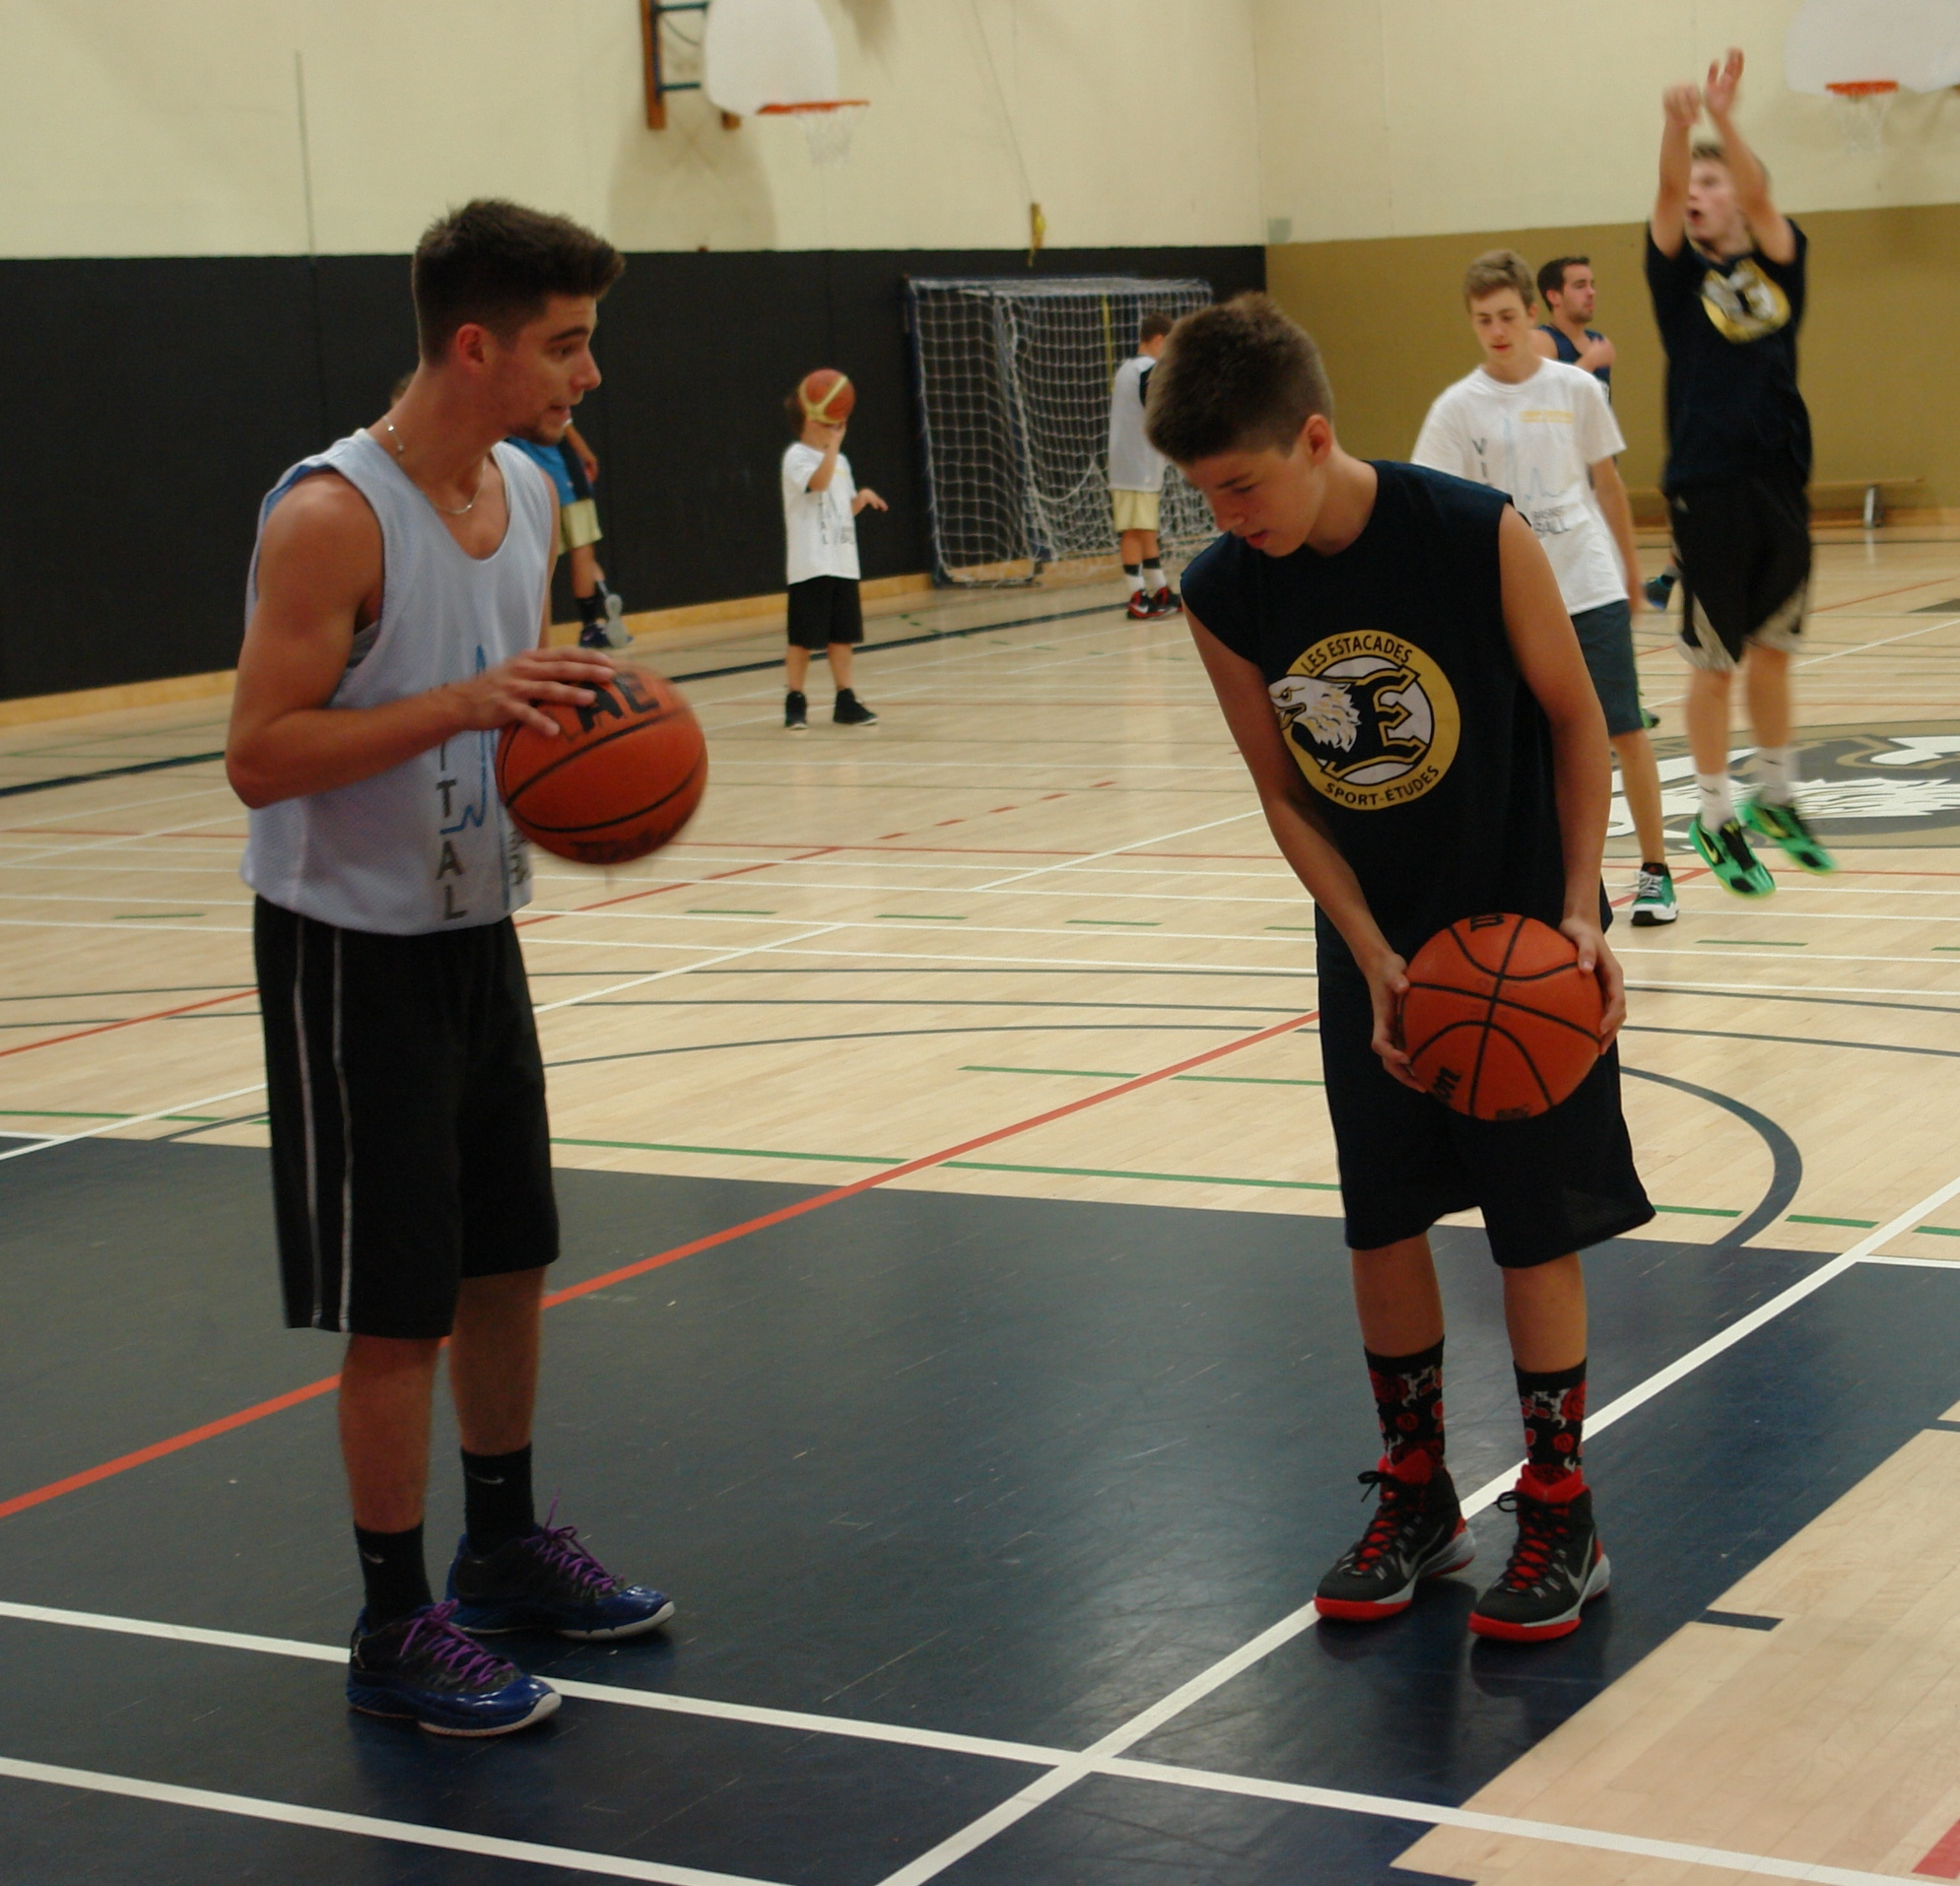 Camp basketball VITAL 2015 - 4